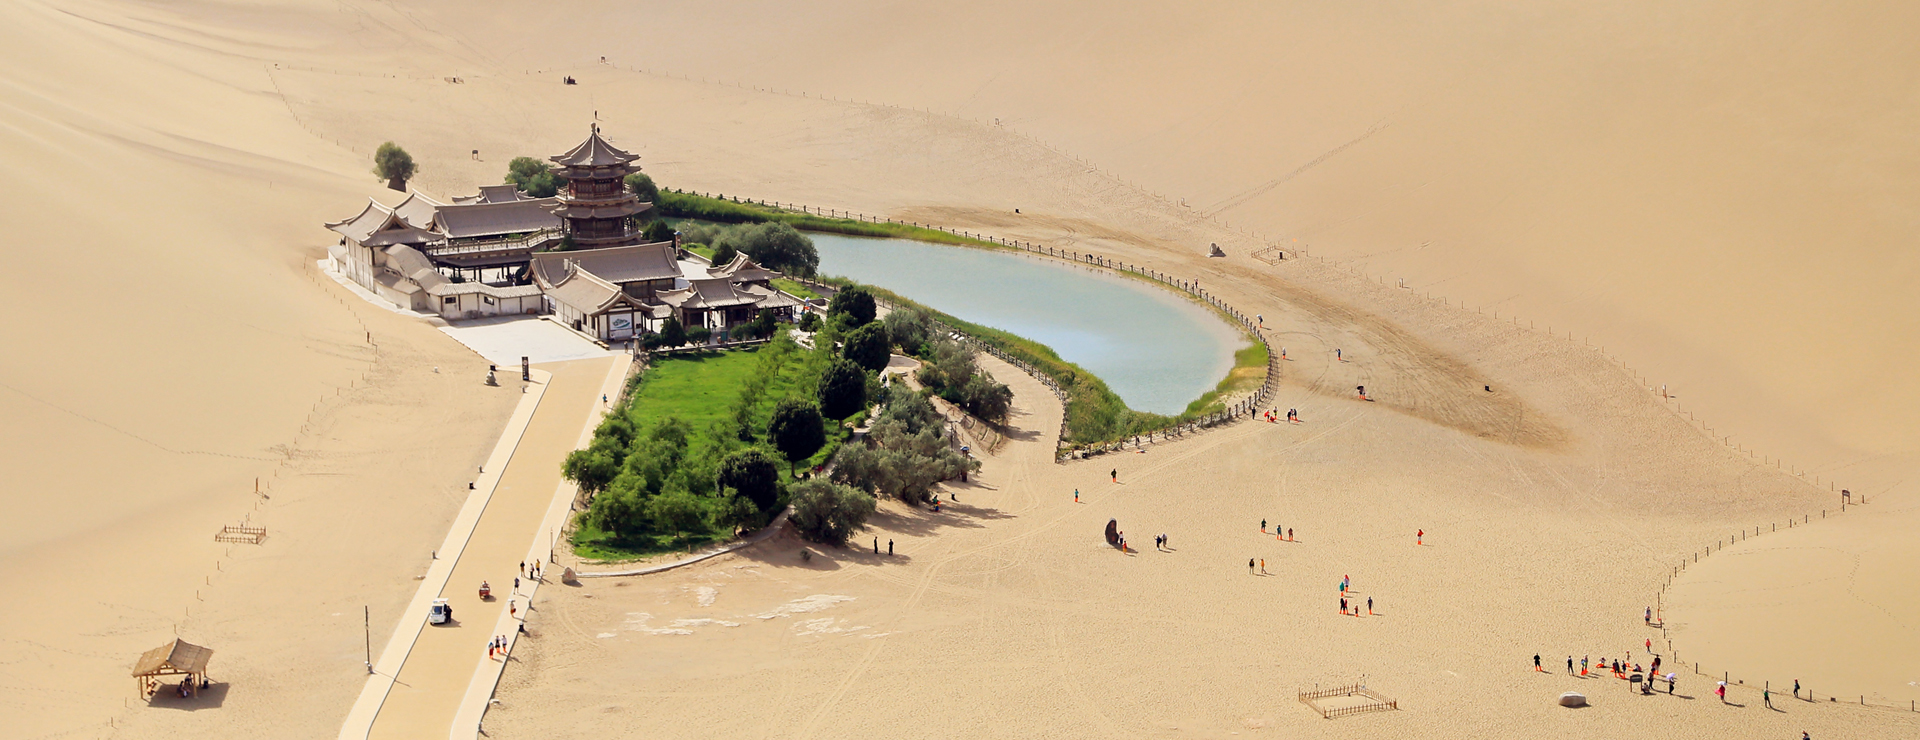 Sidenvagen – Dunhuang